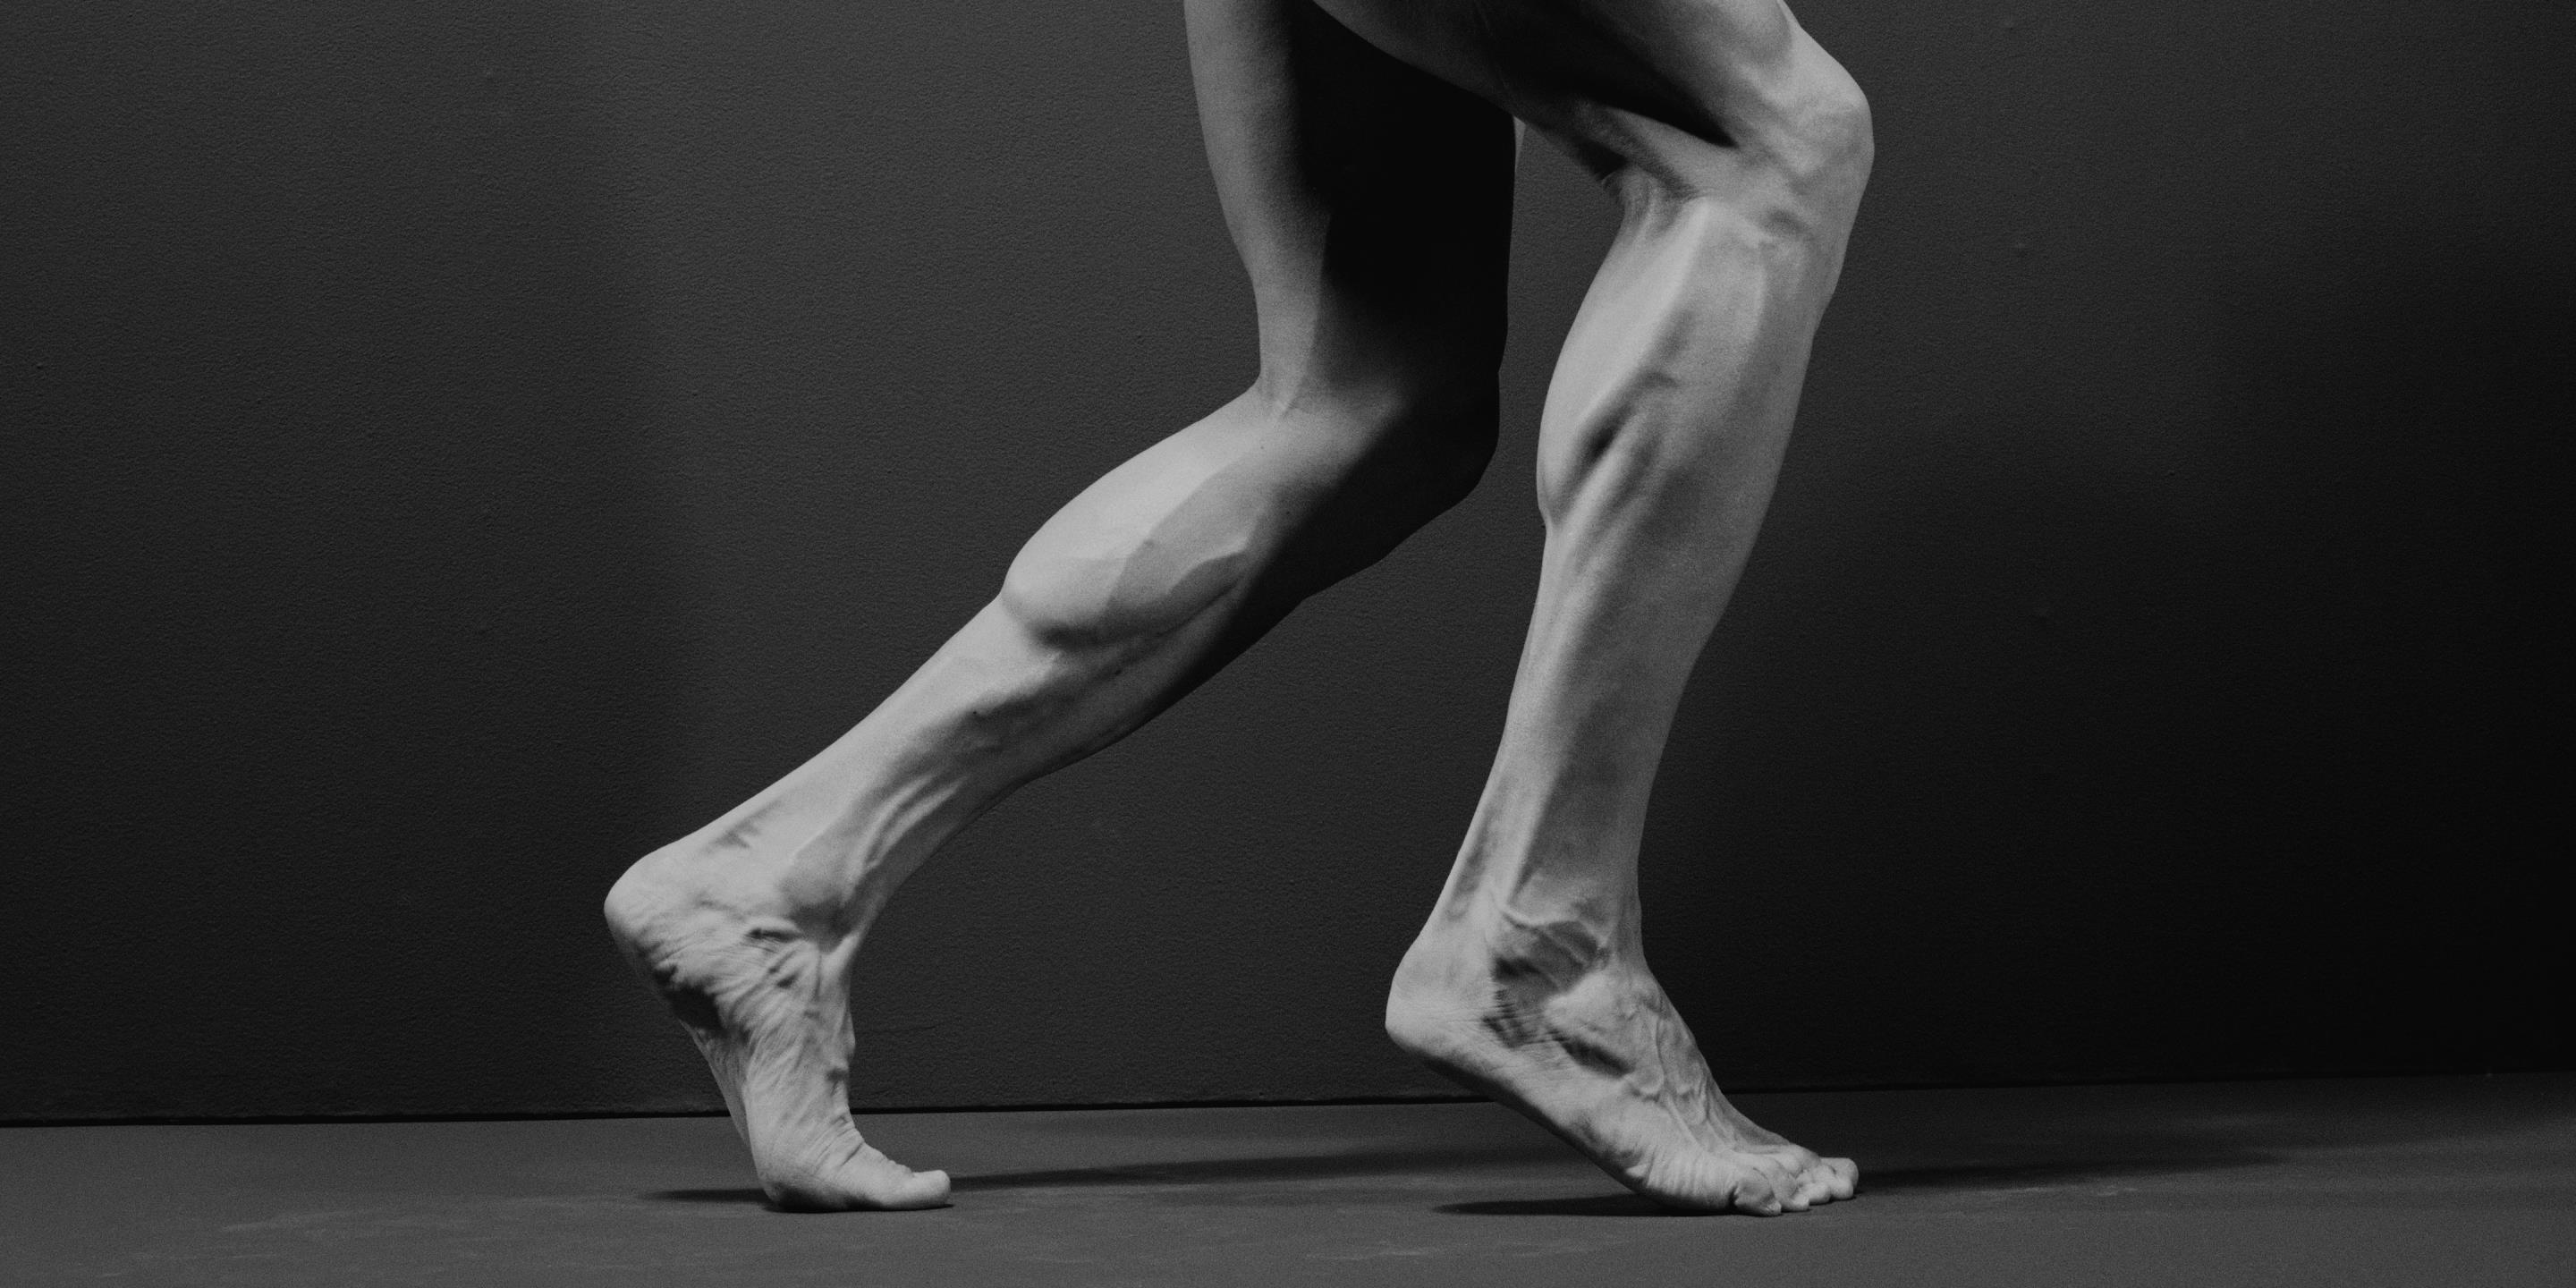 How to strengthen your calf muscles and prevent injury - Furthermore